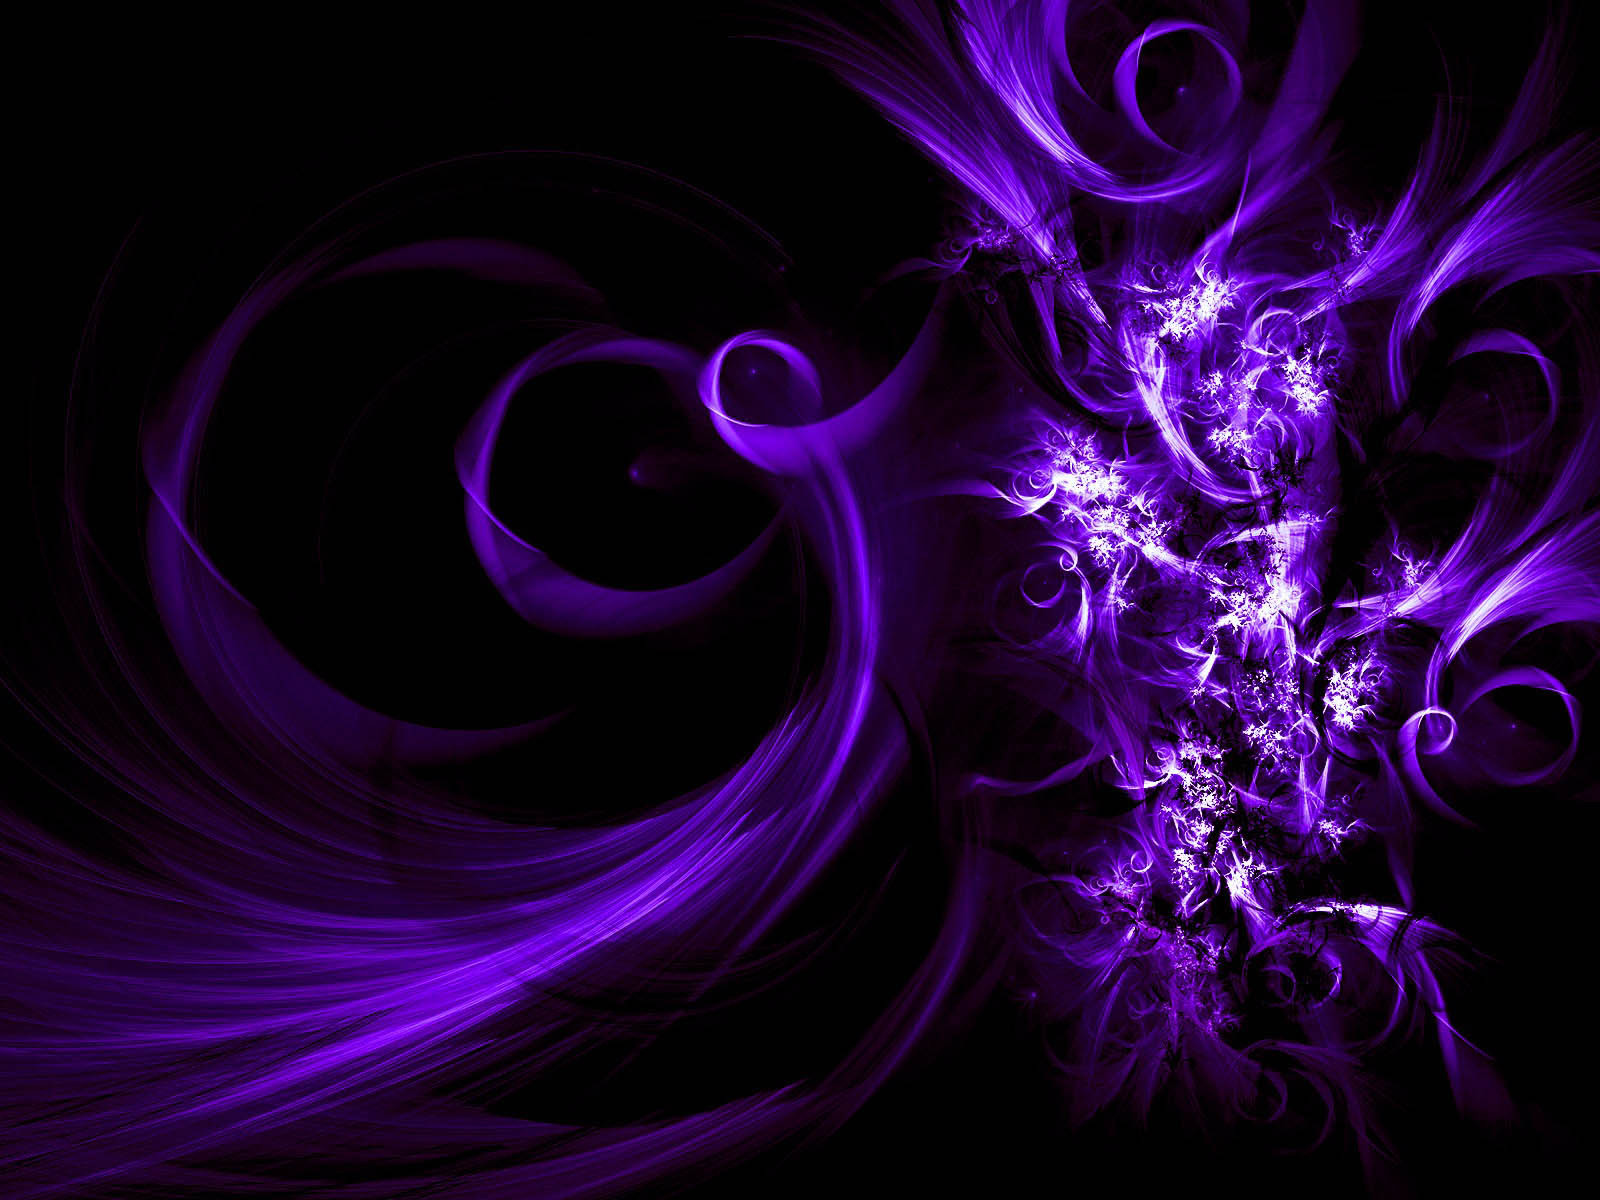 wallpaper Purple Abstract Wallpapers 1600x1200